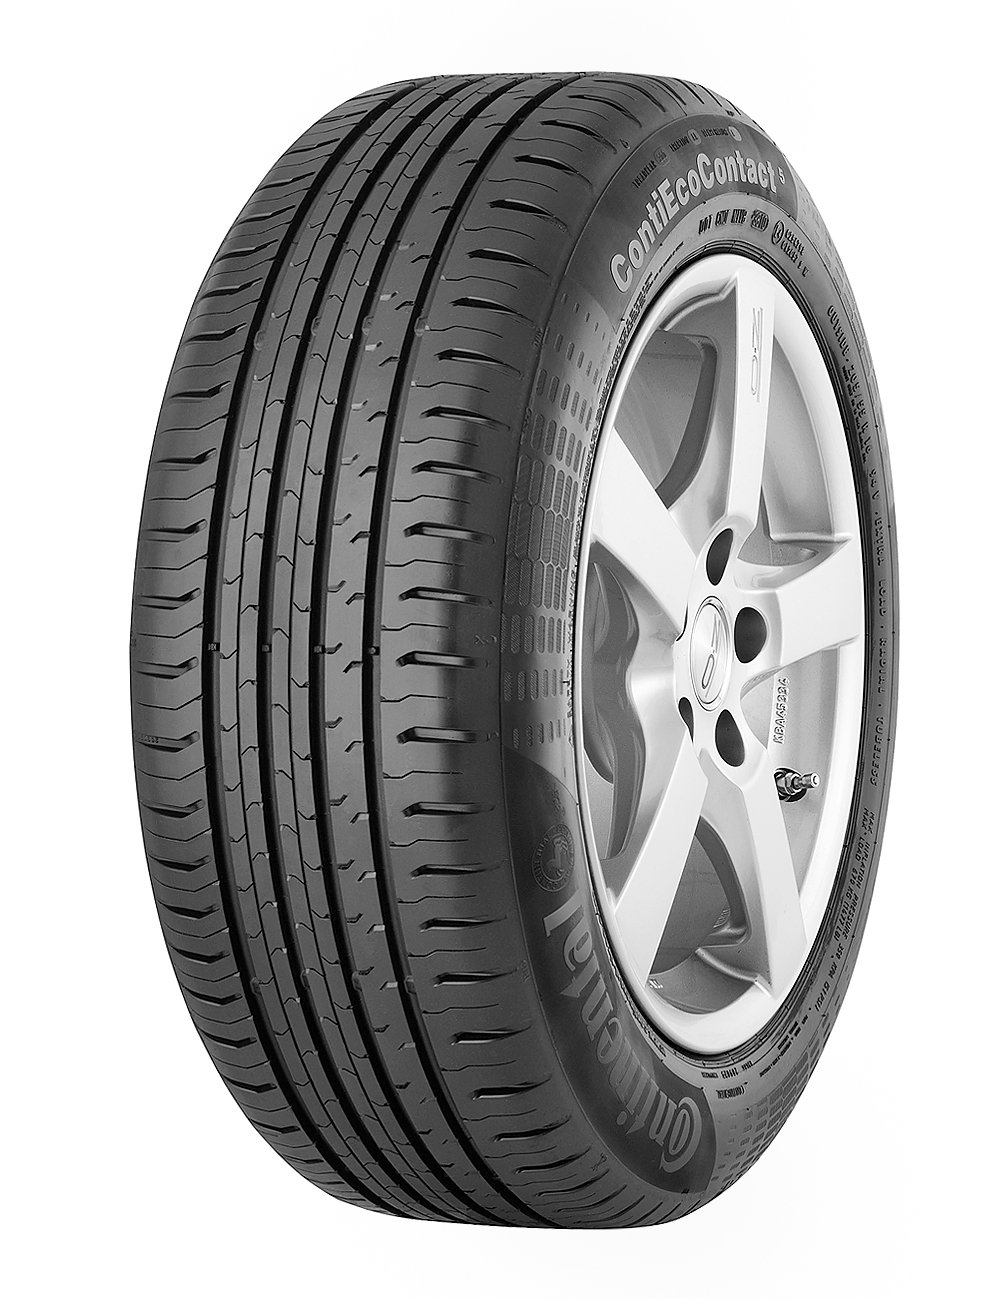 4x Continental ContiEcoContact 5 205/55 R16 94H XL